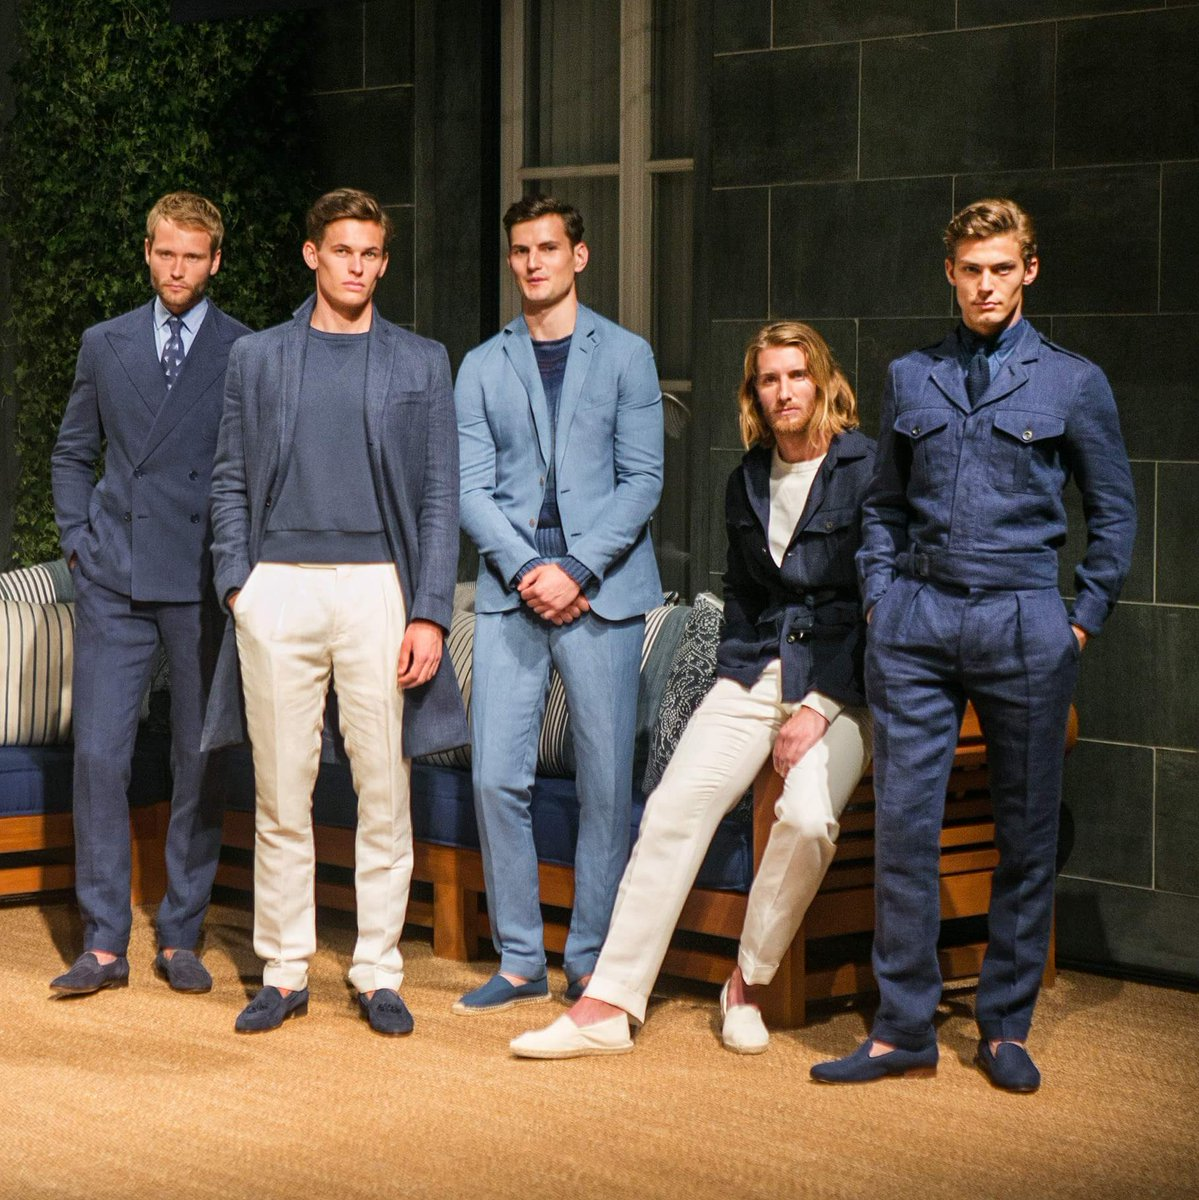 The Ralph Lauren Purple Label Spring 2018 Collection was presented today in Milan. https://t.co/5rp8imzvxQ